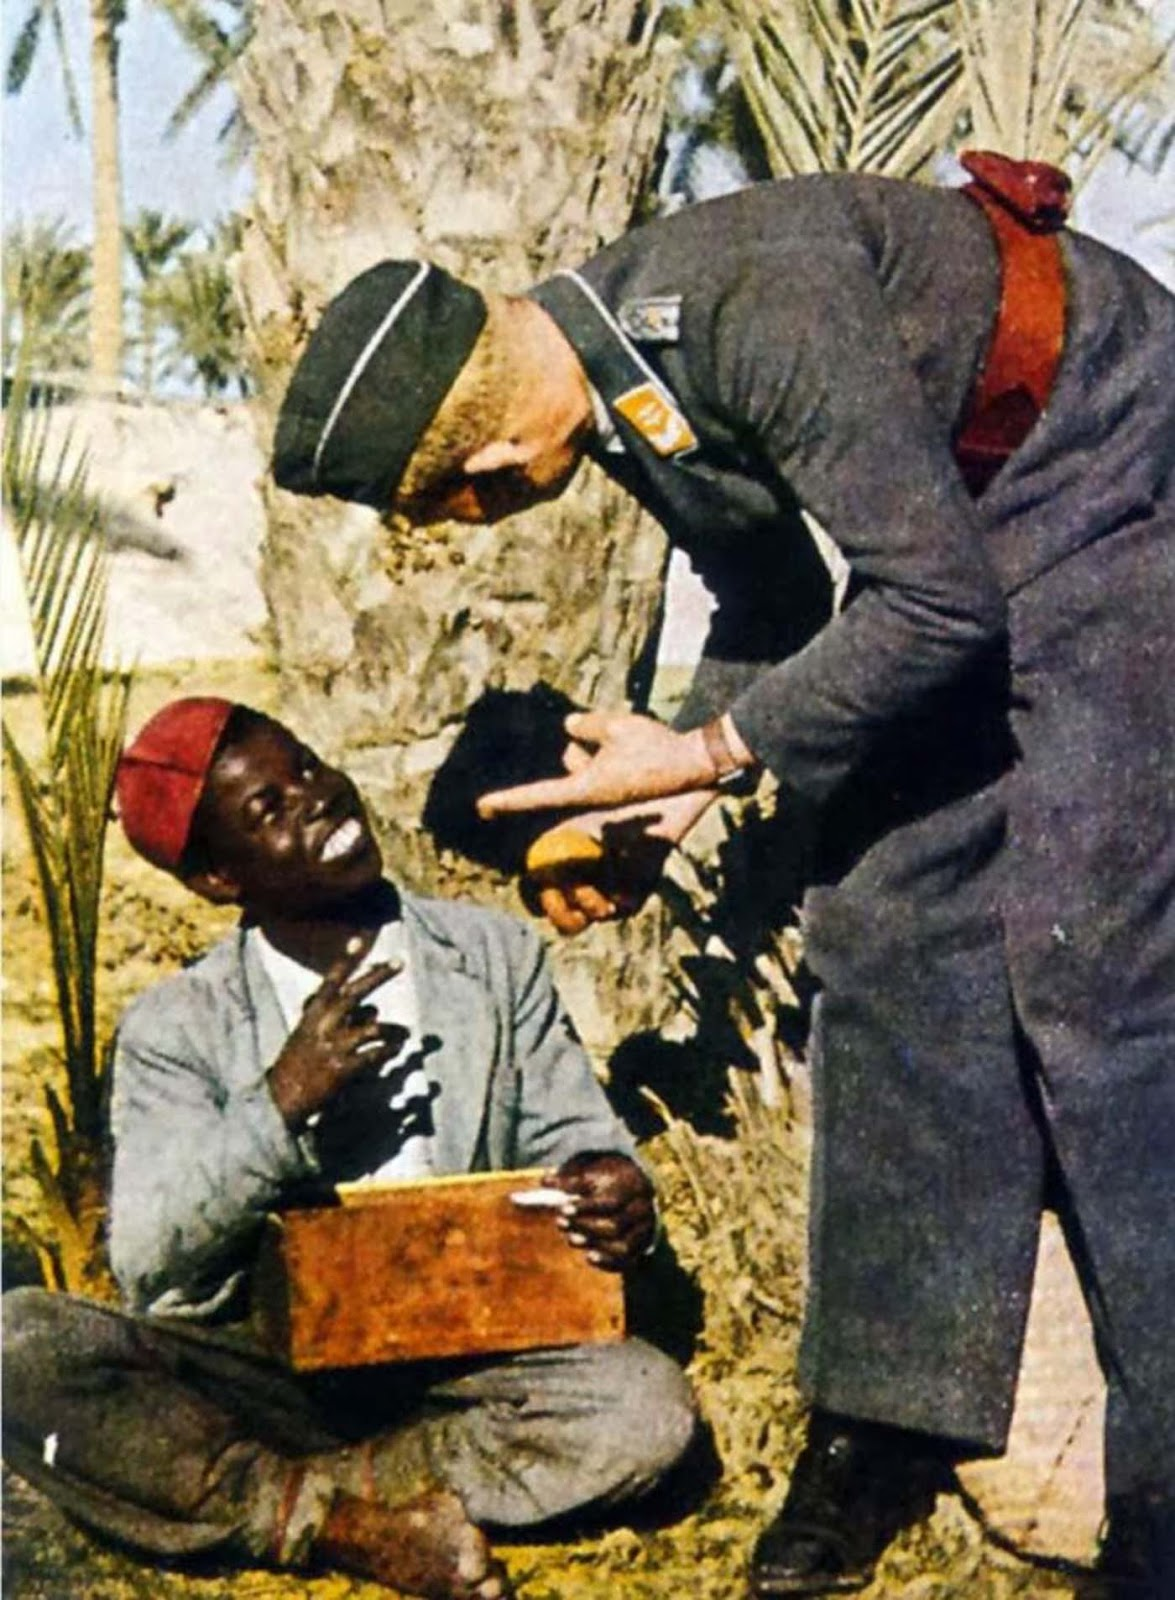 A member of the Luftwaffe exchanges gifts with a native in North Africa, 1941.